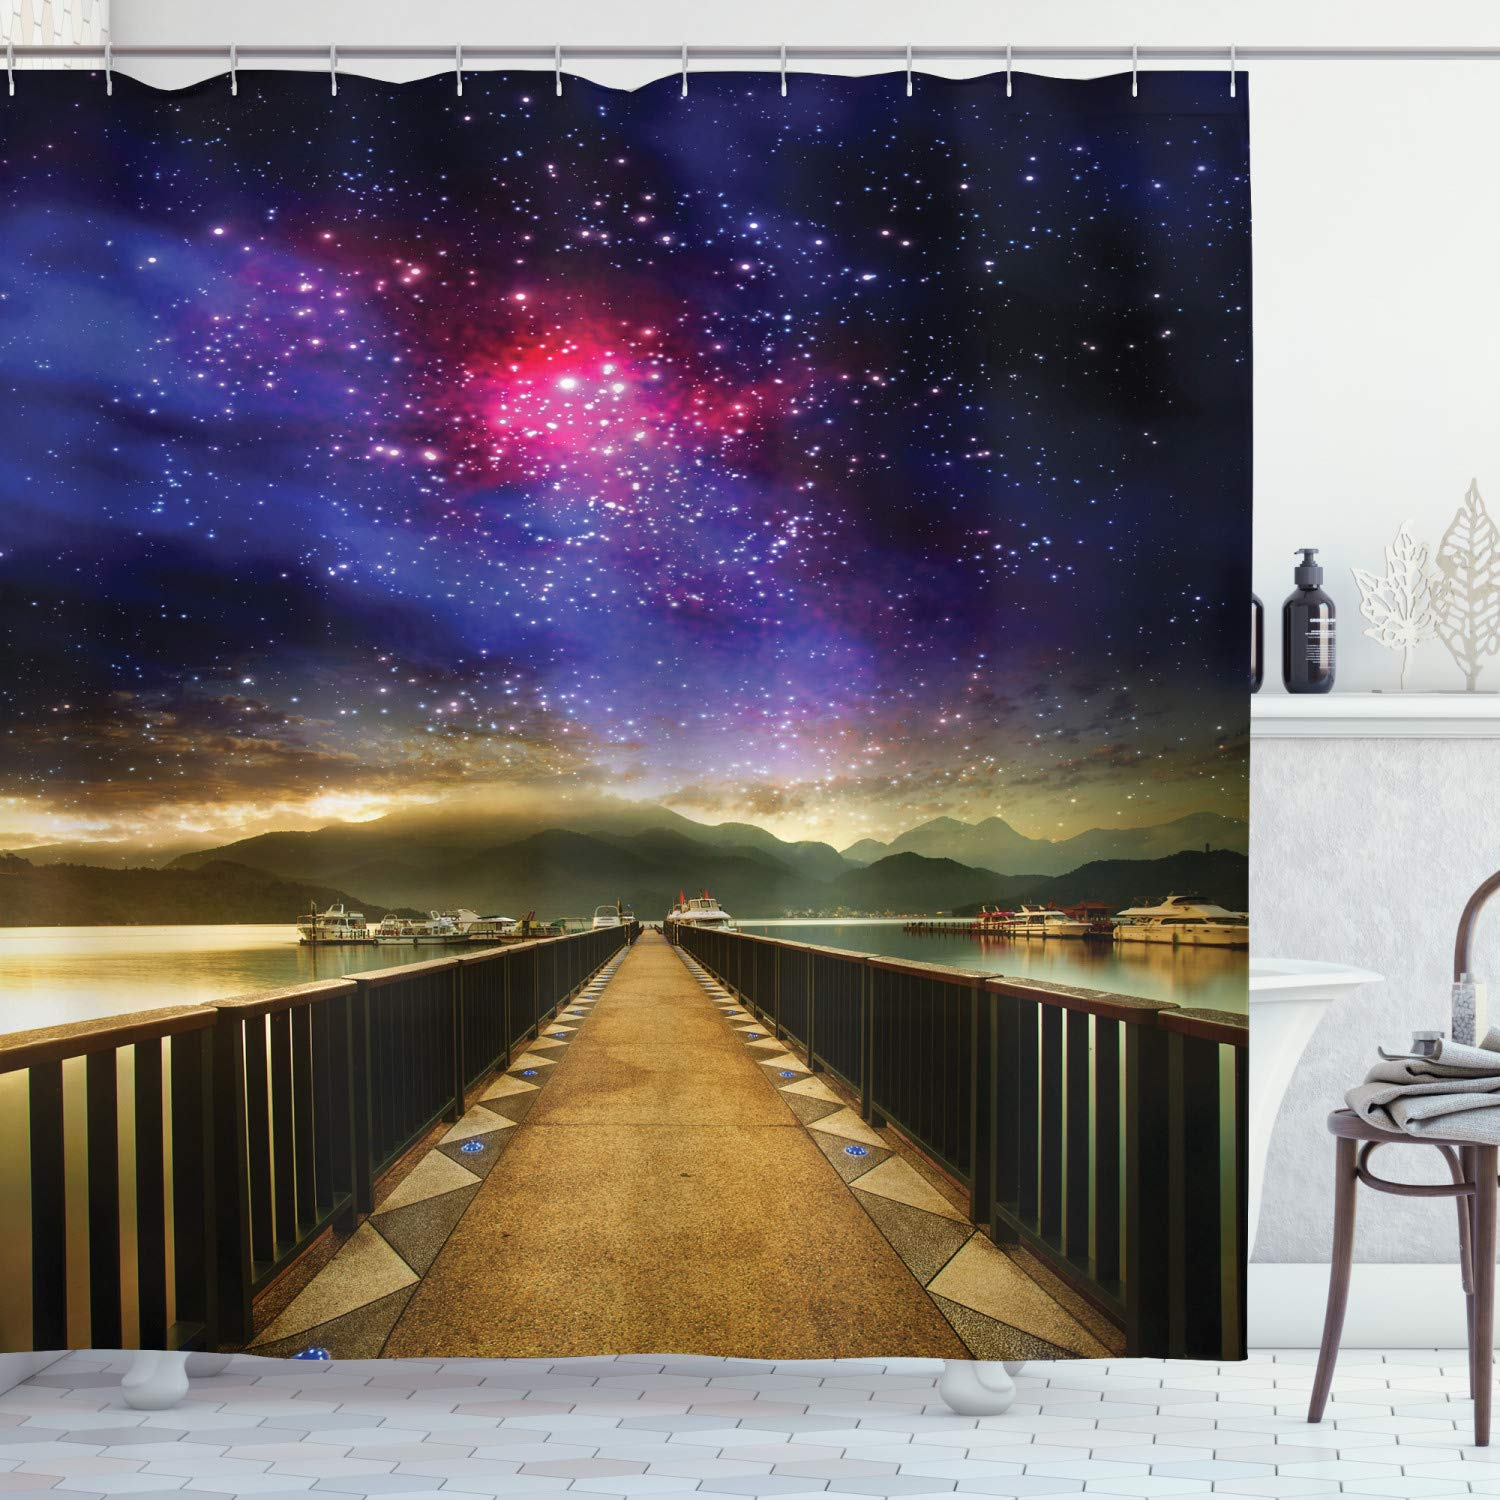 """Ambesonne Universe Shower Curtain, Galaxy Cosmos Wooden Bridge Panoramic View Celestial Space Print, Cloth Fabric Bathroom Decor Set with Hooks, 70"""" Long, Magenta Black"""